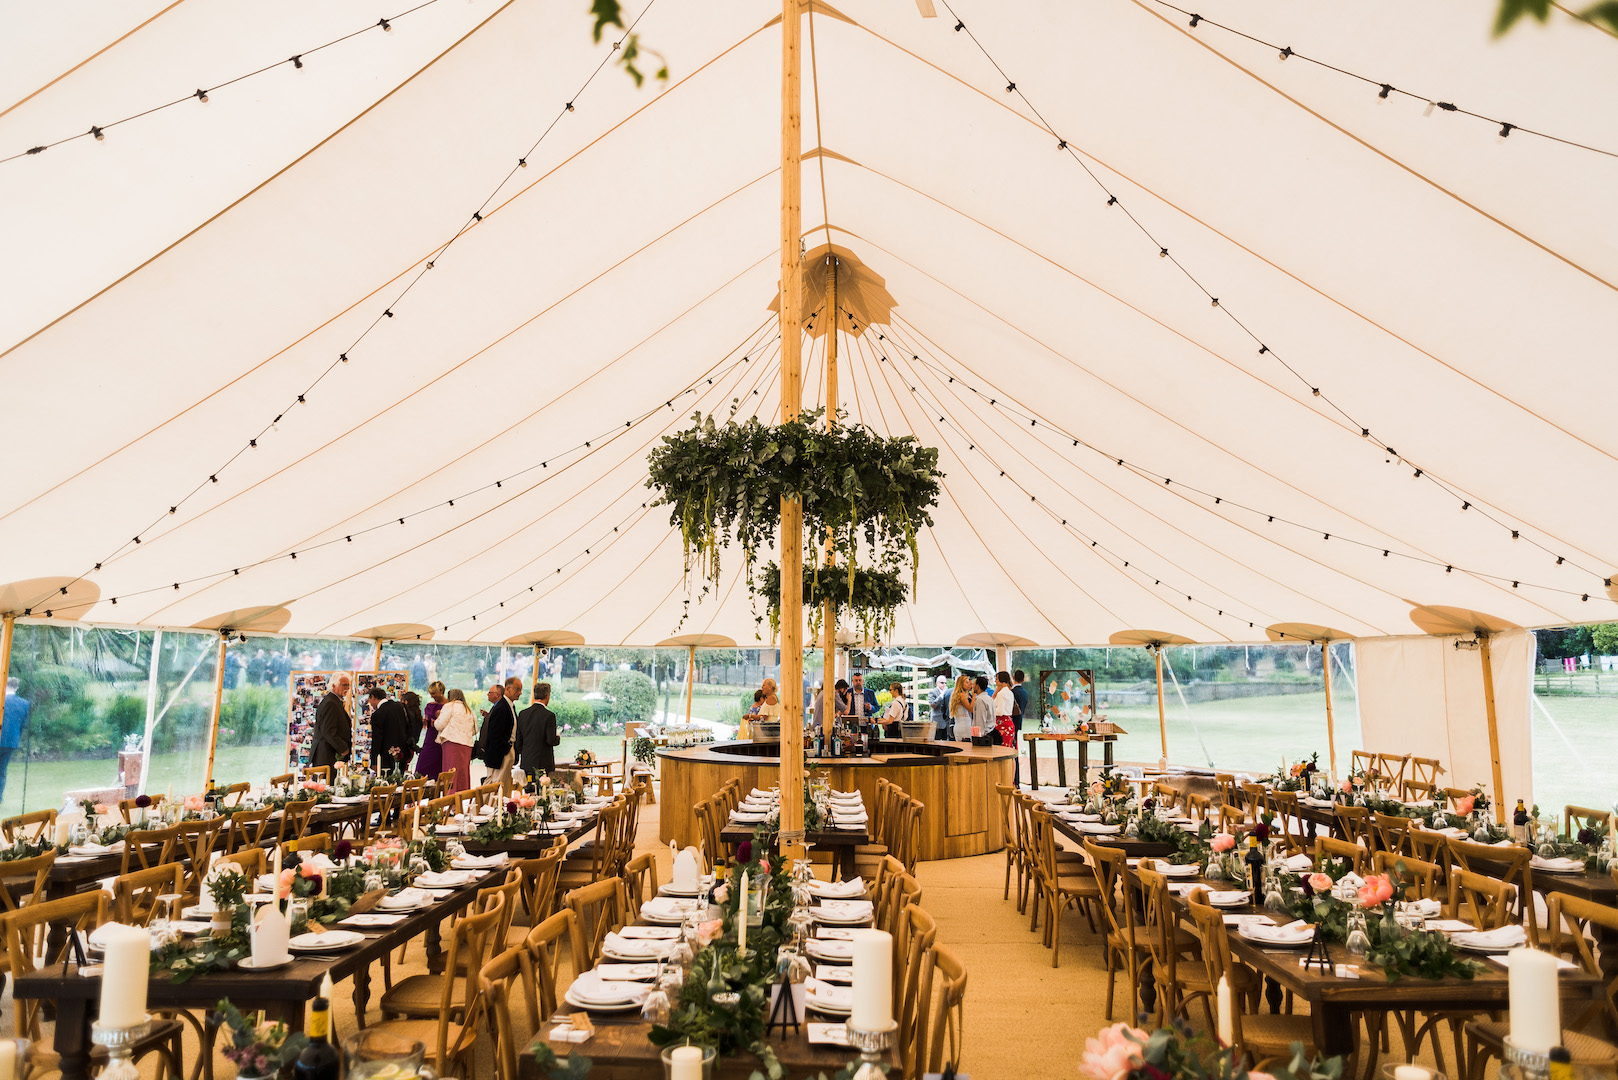 Sarah and Joe's PapaKata Sperry Wedding: Floral crowns by Julia-Anna Flowers